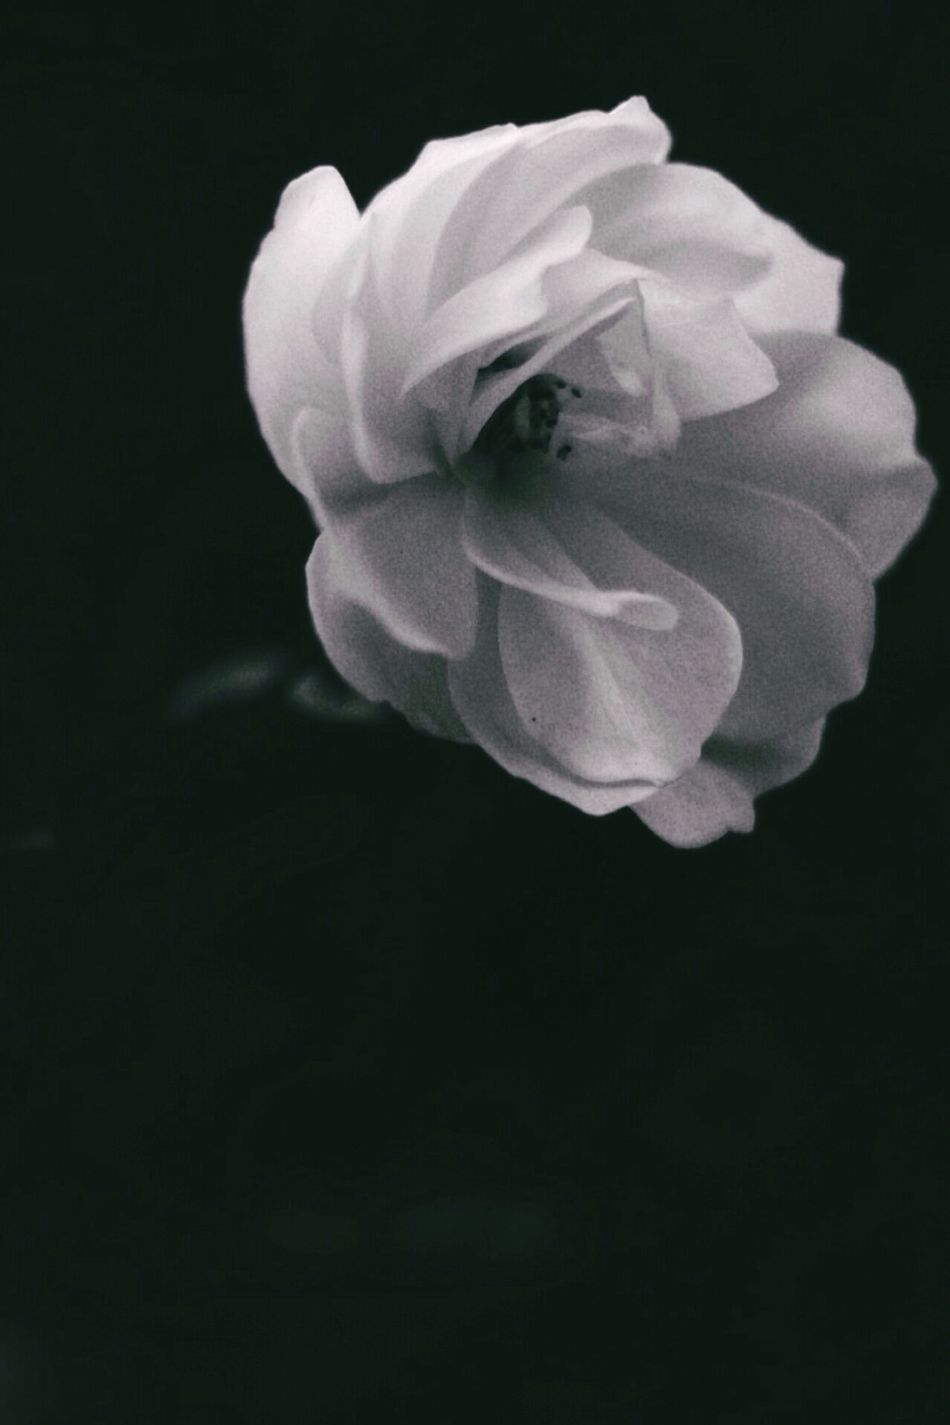 Flower Fragility Petal Nature Beauty In Nature Close-up No People Flower Head Plant Freshness Black Background Outdoors Day Blackandwhite Monochrome Afterdark Winter Blooms White Rose Beauty In Nature Fragile Black And White Blackandwhite Photography